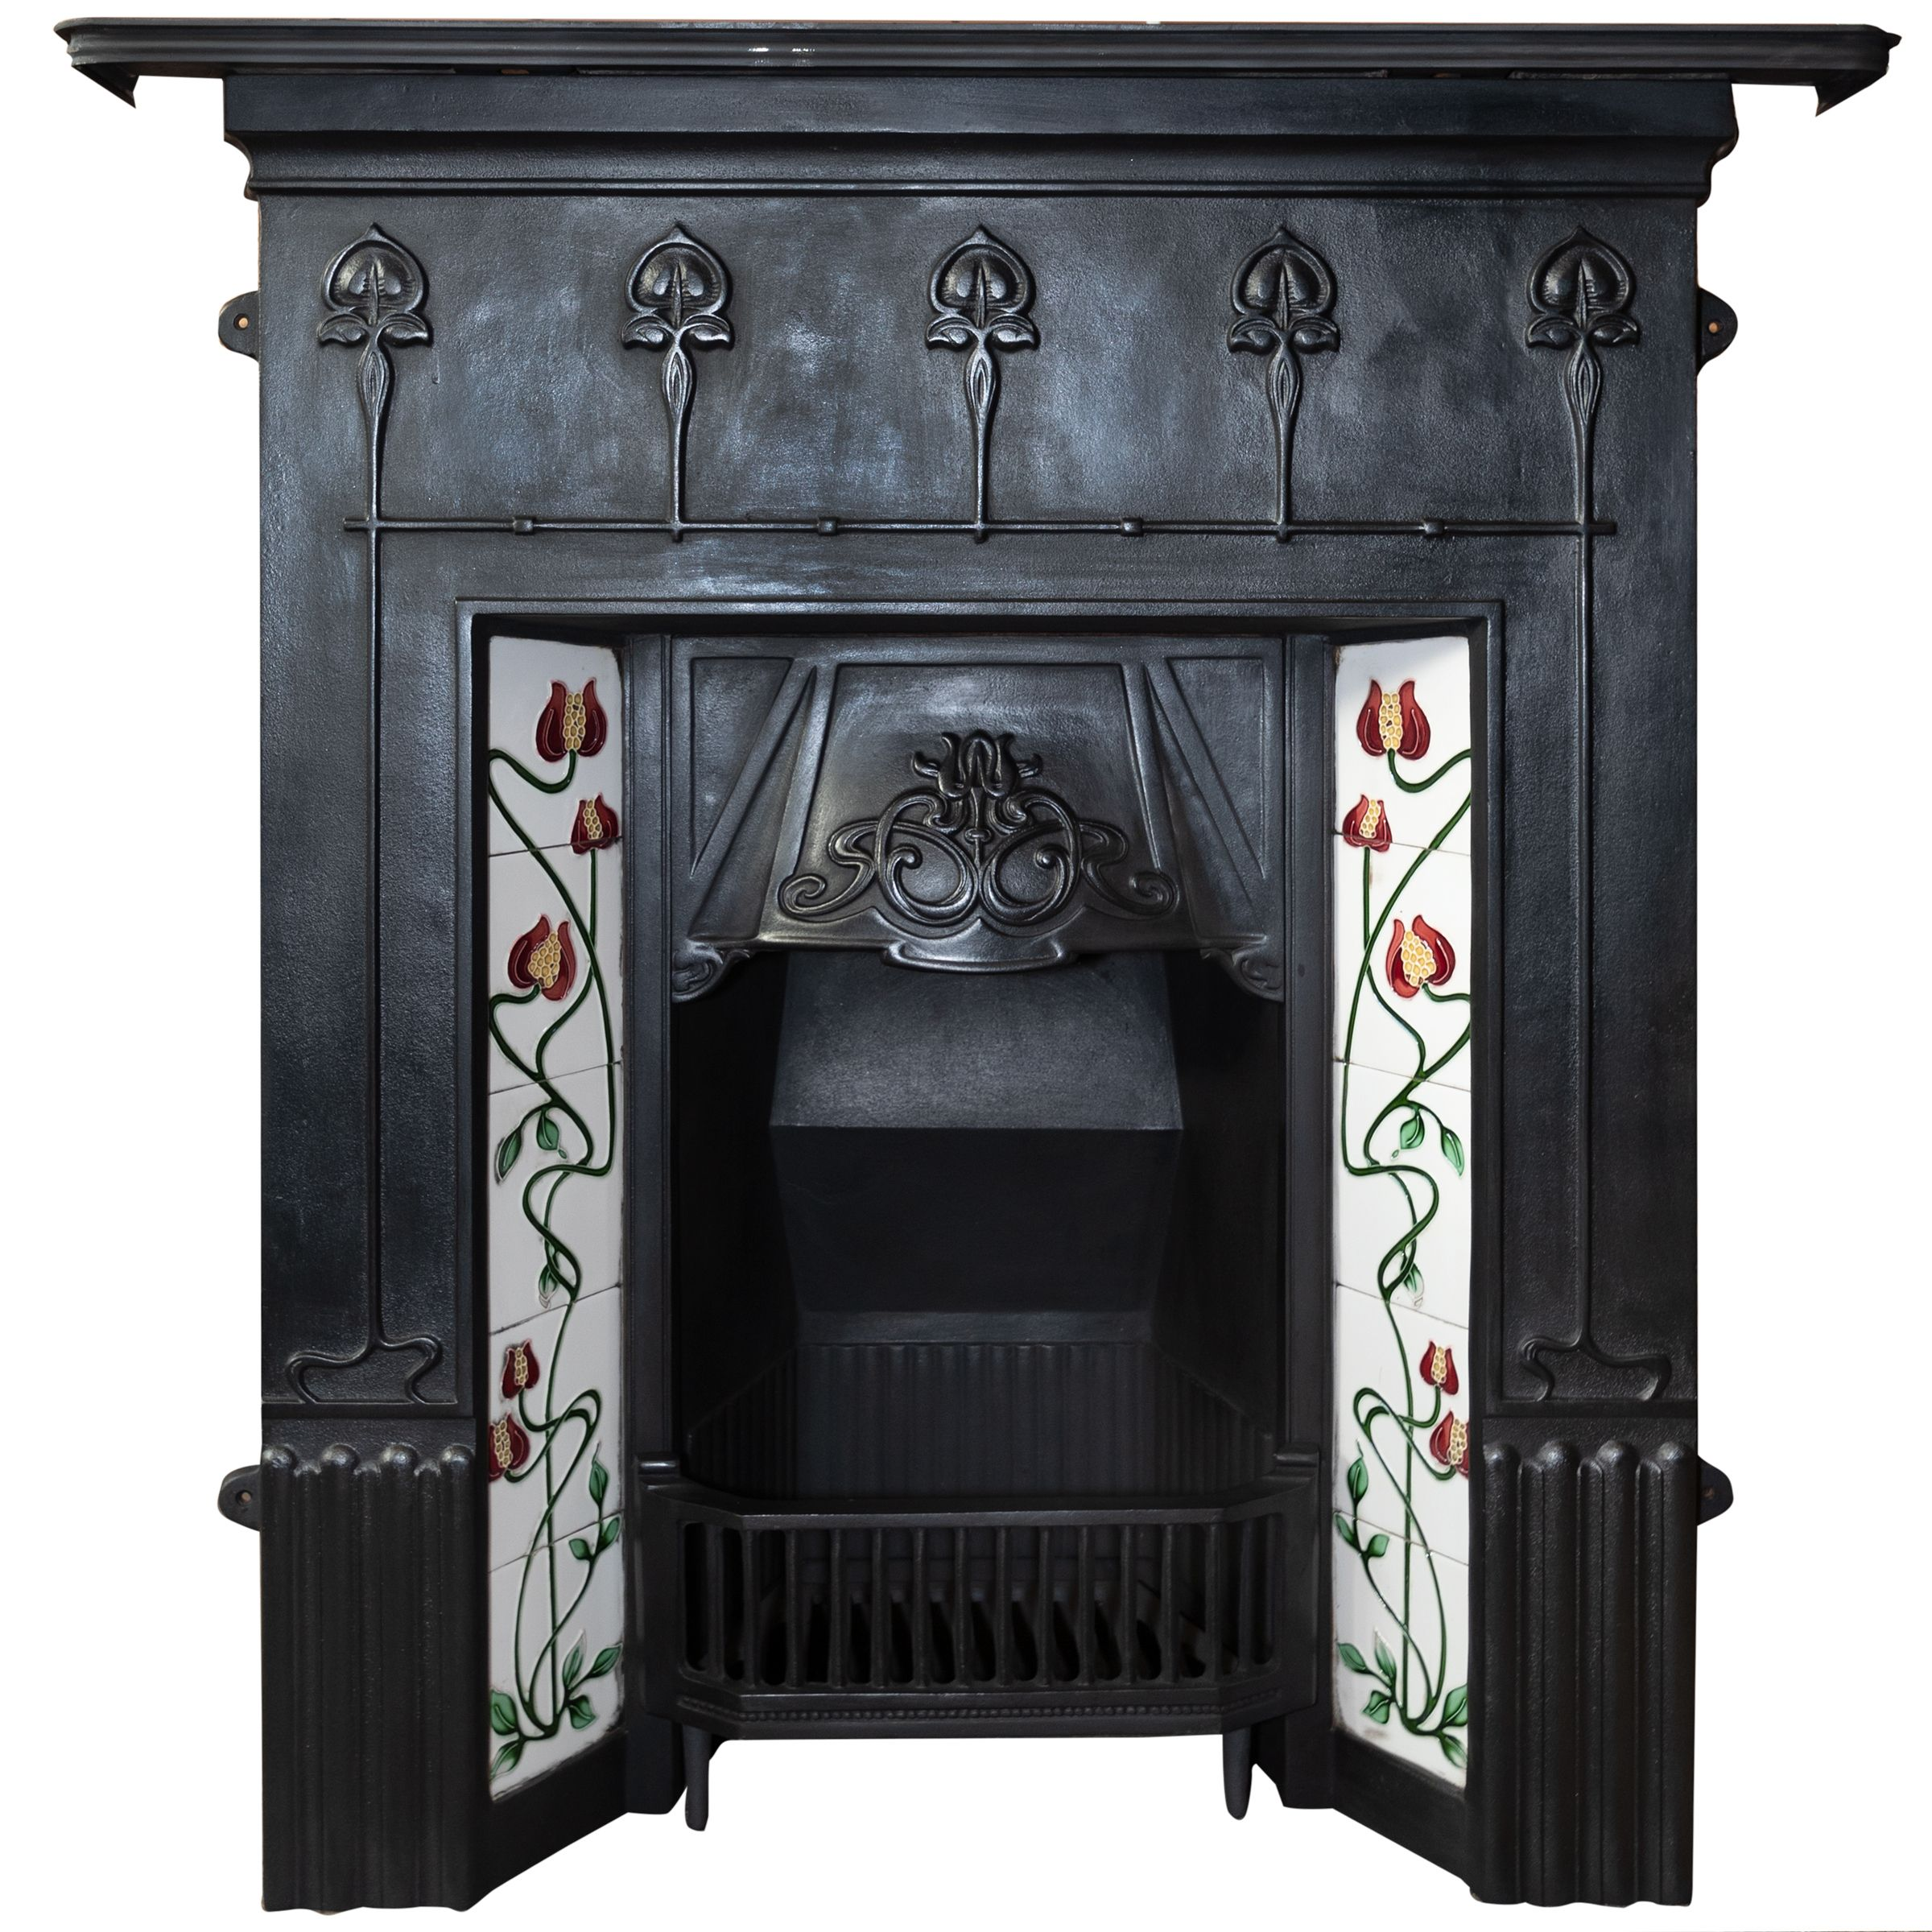 Antique Fireplace Tile Awesome Huge Selection Of Antique Cast Iron Fireplaces Fully